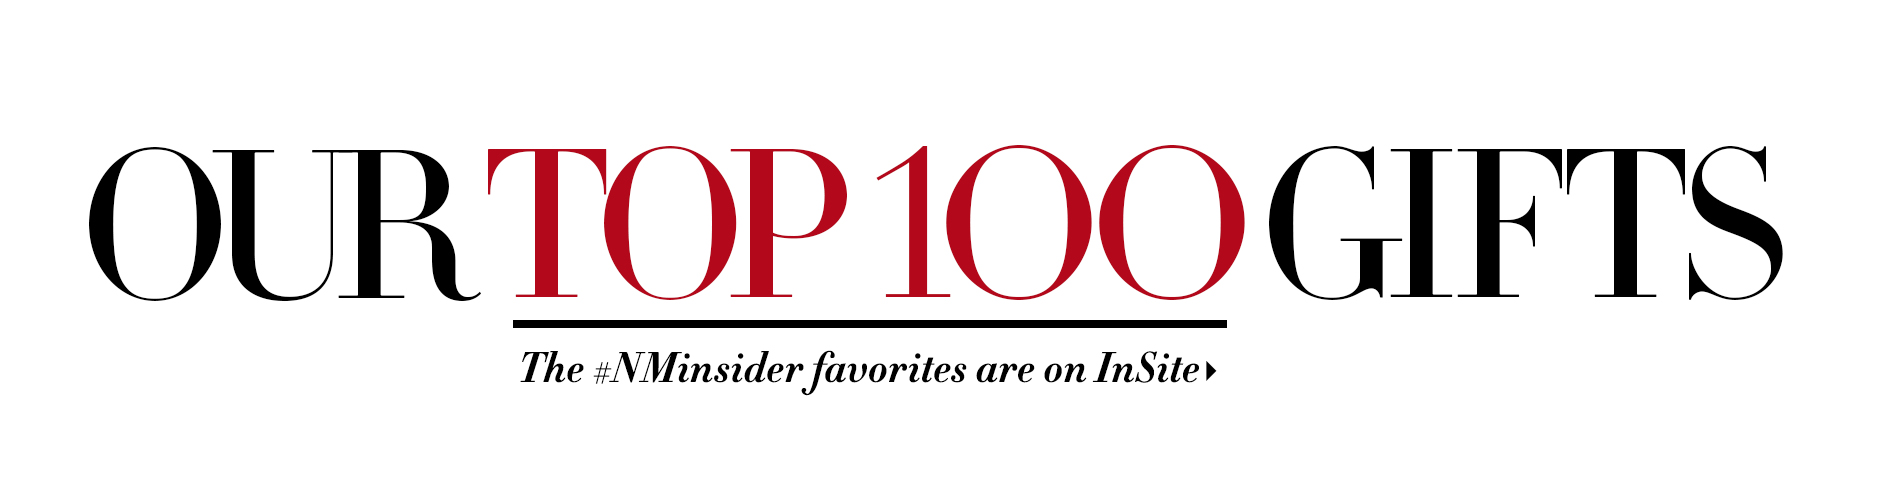 Our Top 100 Gifts